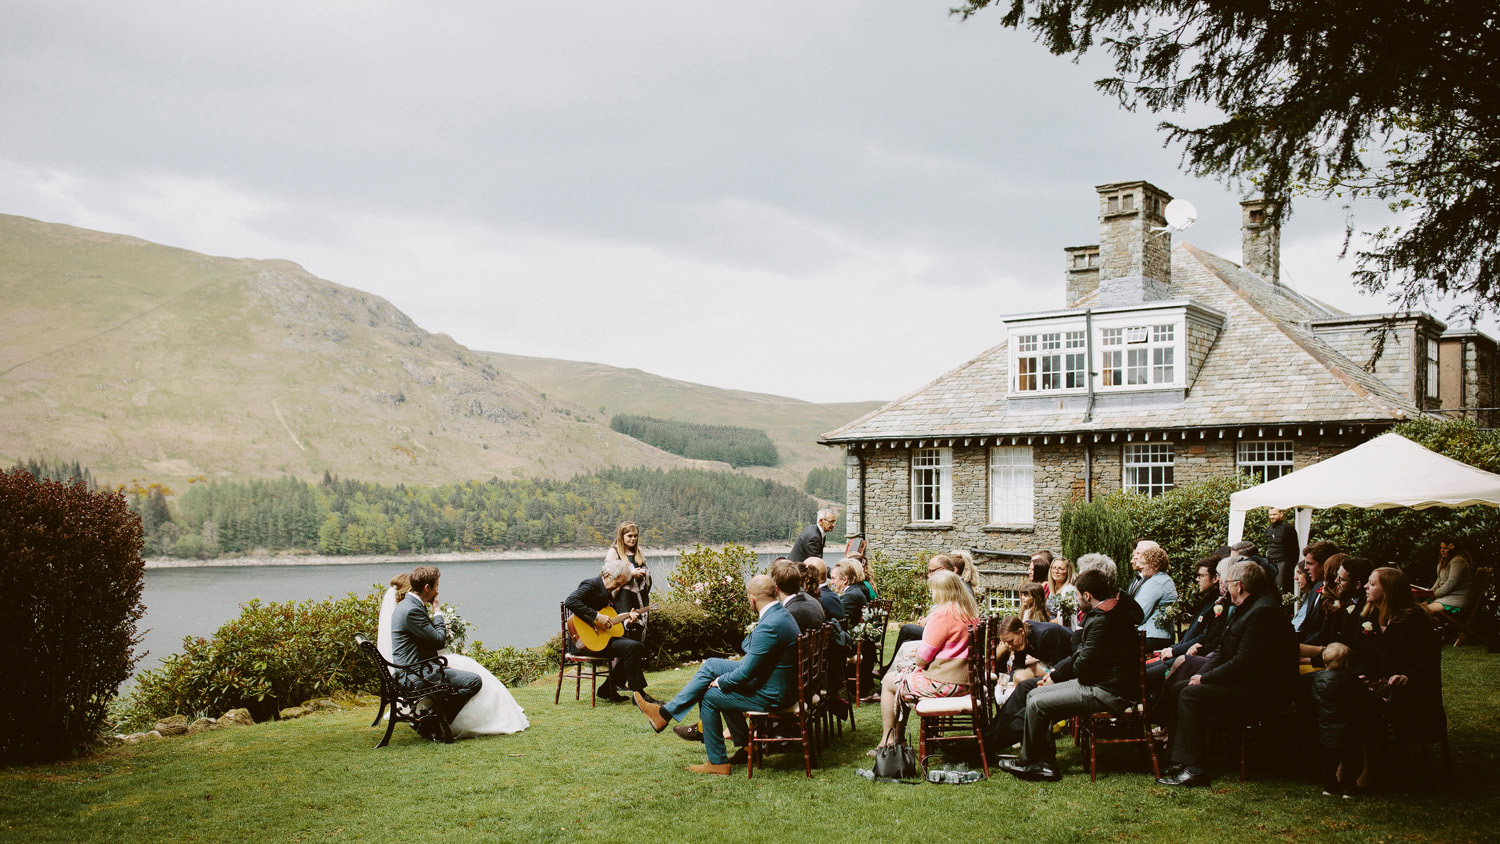 outside wedding ceremony at Haweswater Hotel next to a lake